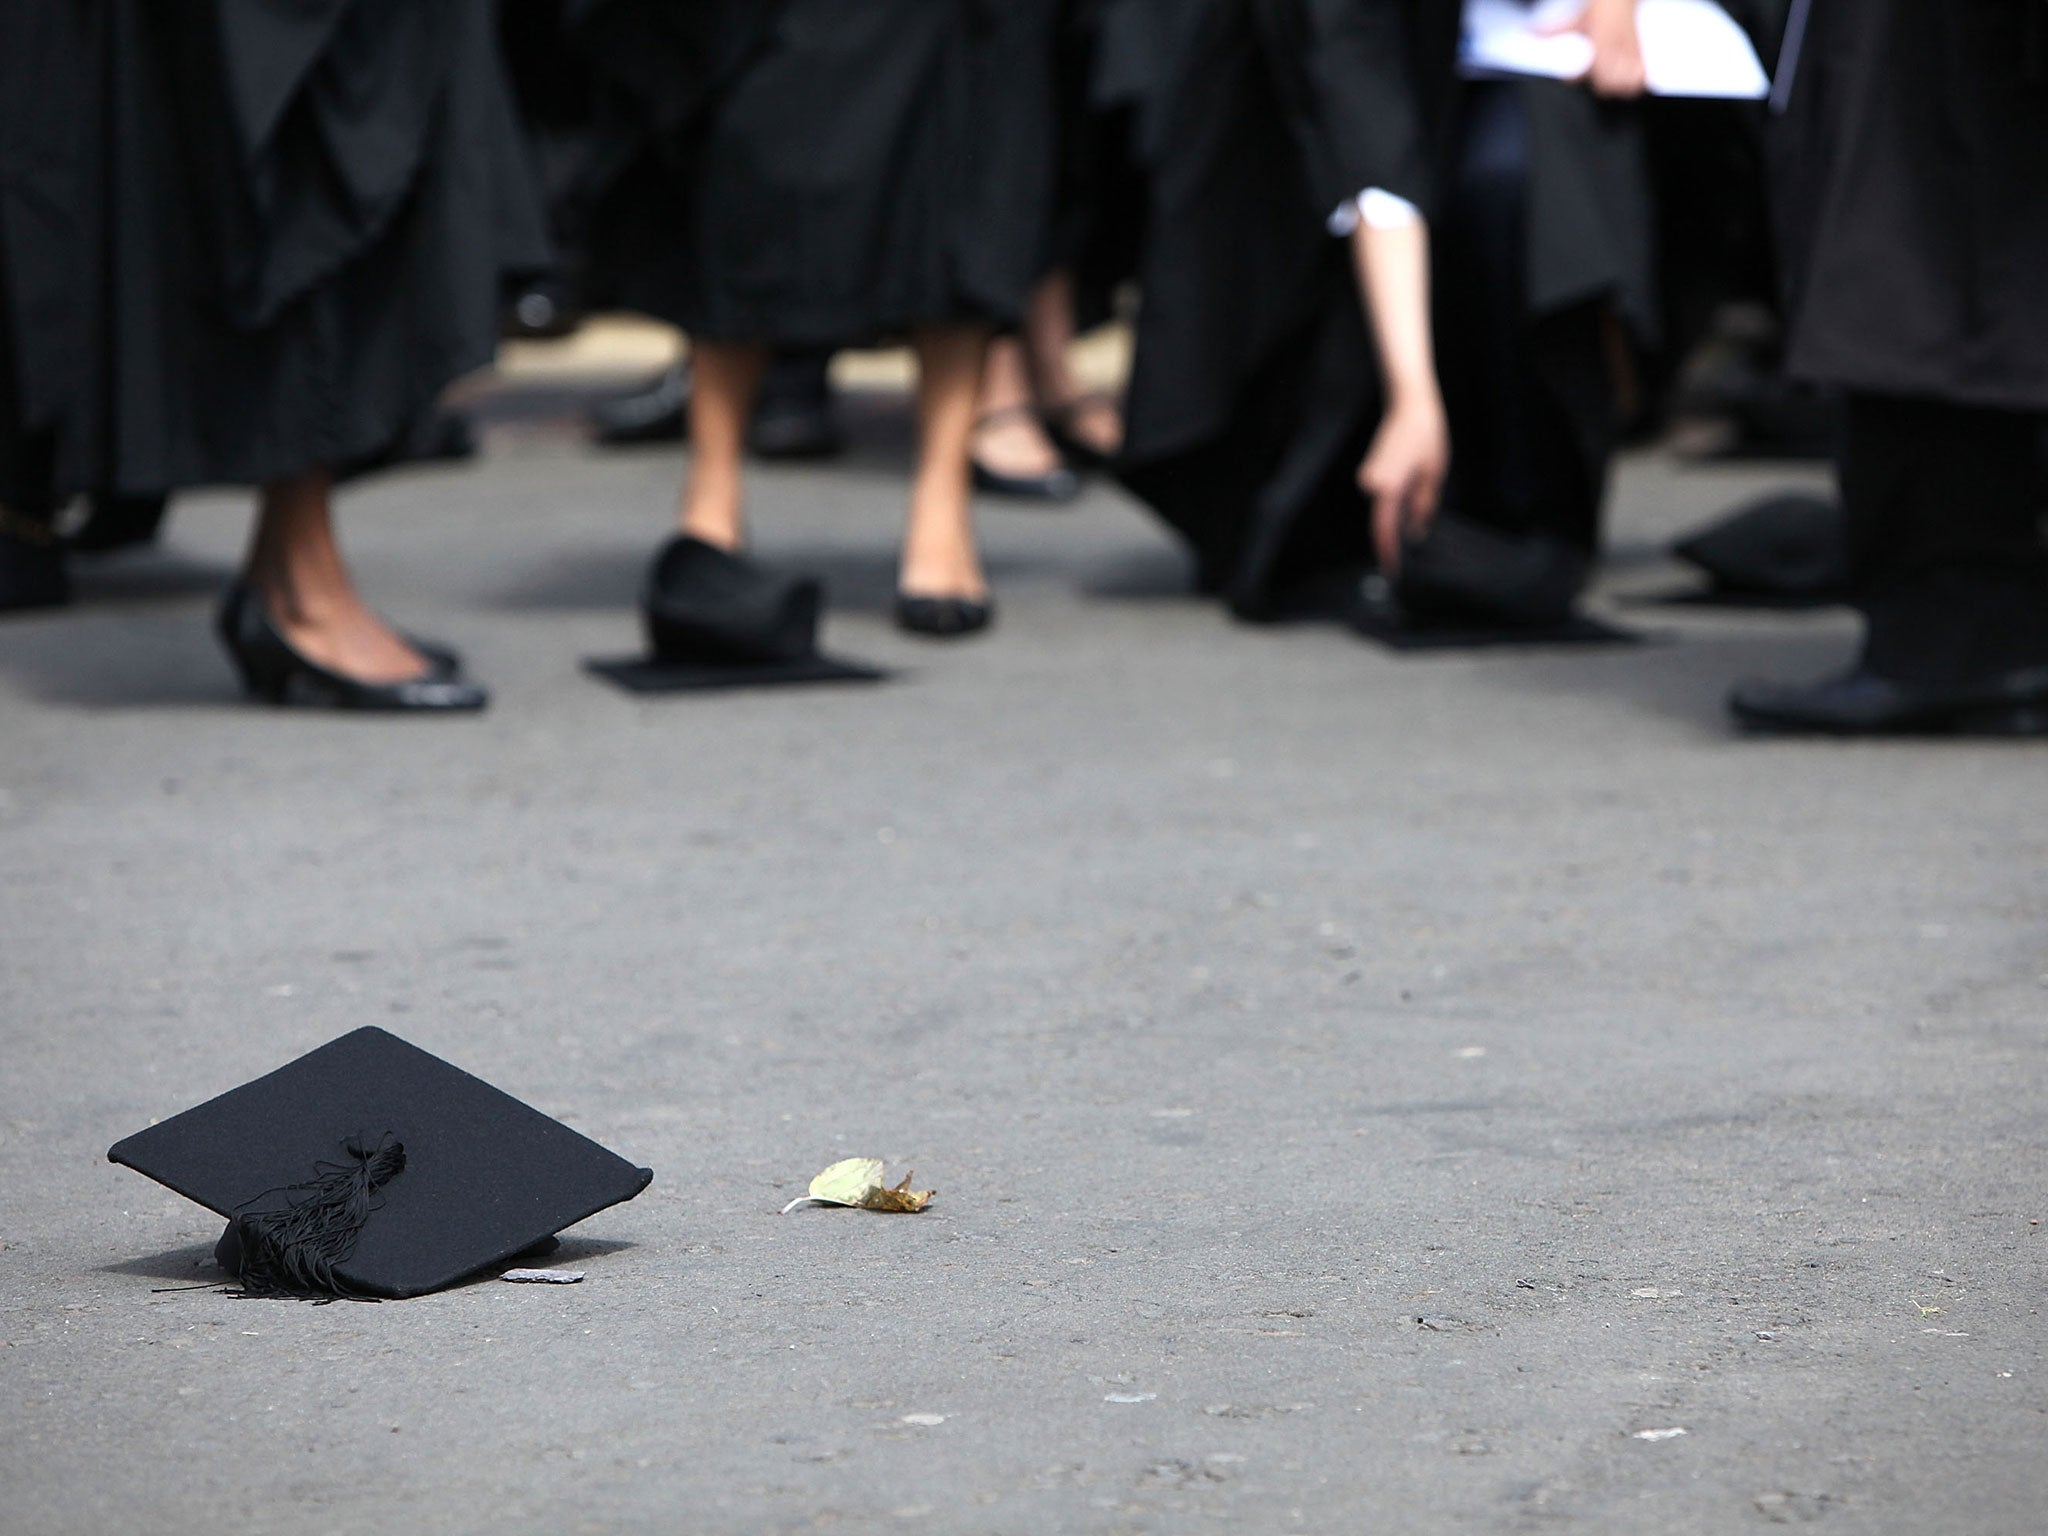 Student Finance loans 'illegal and unenforceable', says top lawyer